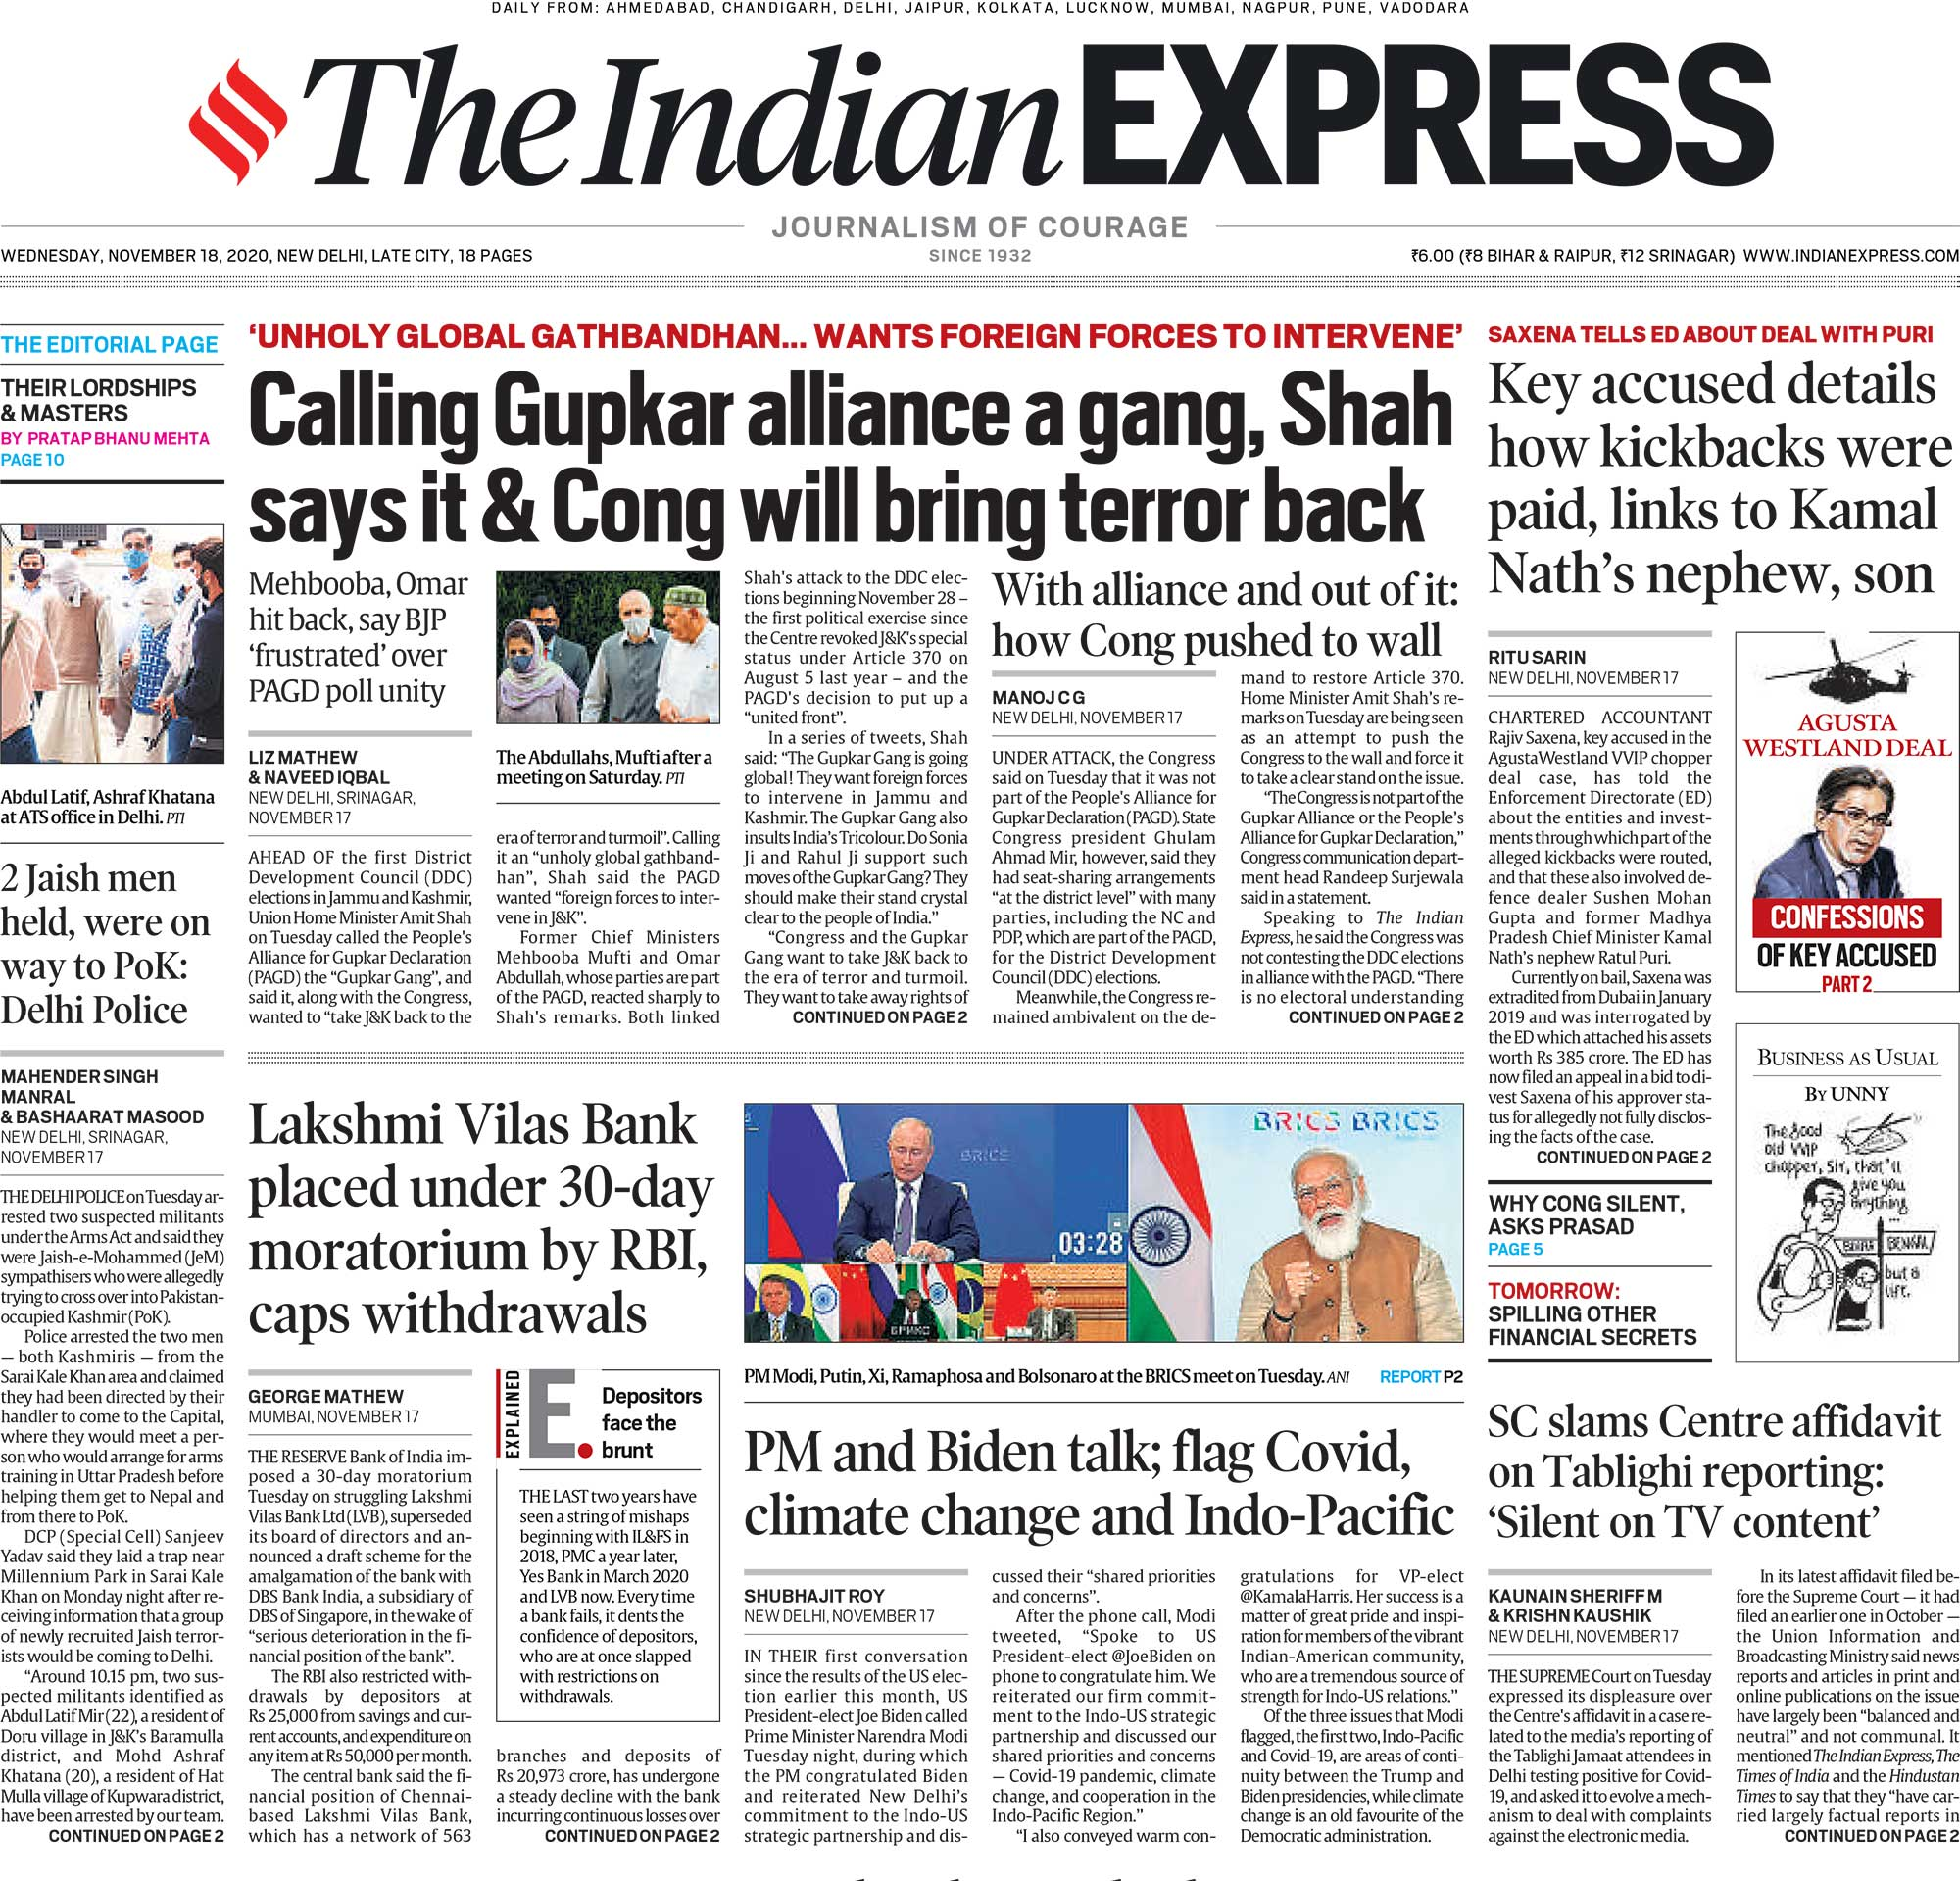 Amit Shah\'s Remarks On Gupkar Alliance And Other Top Stories